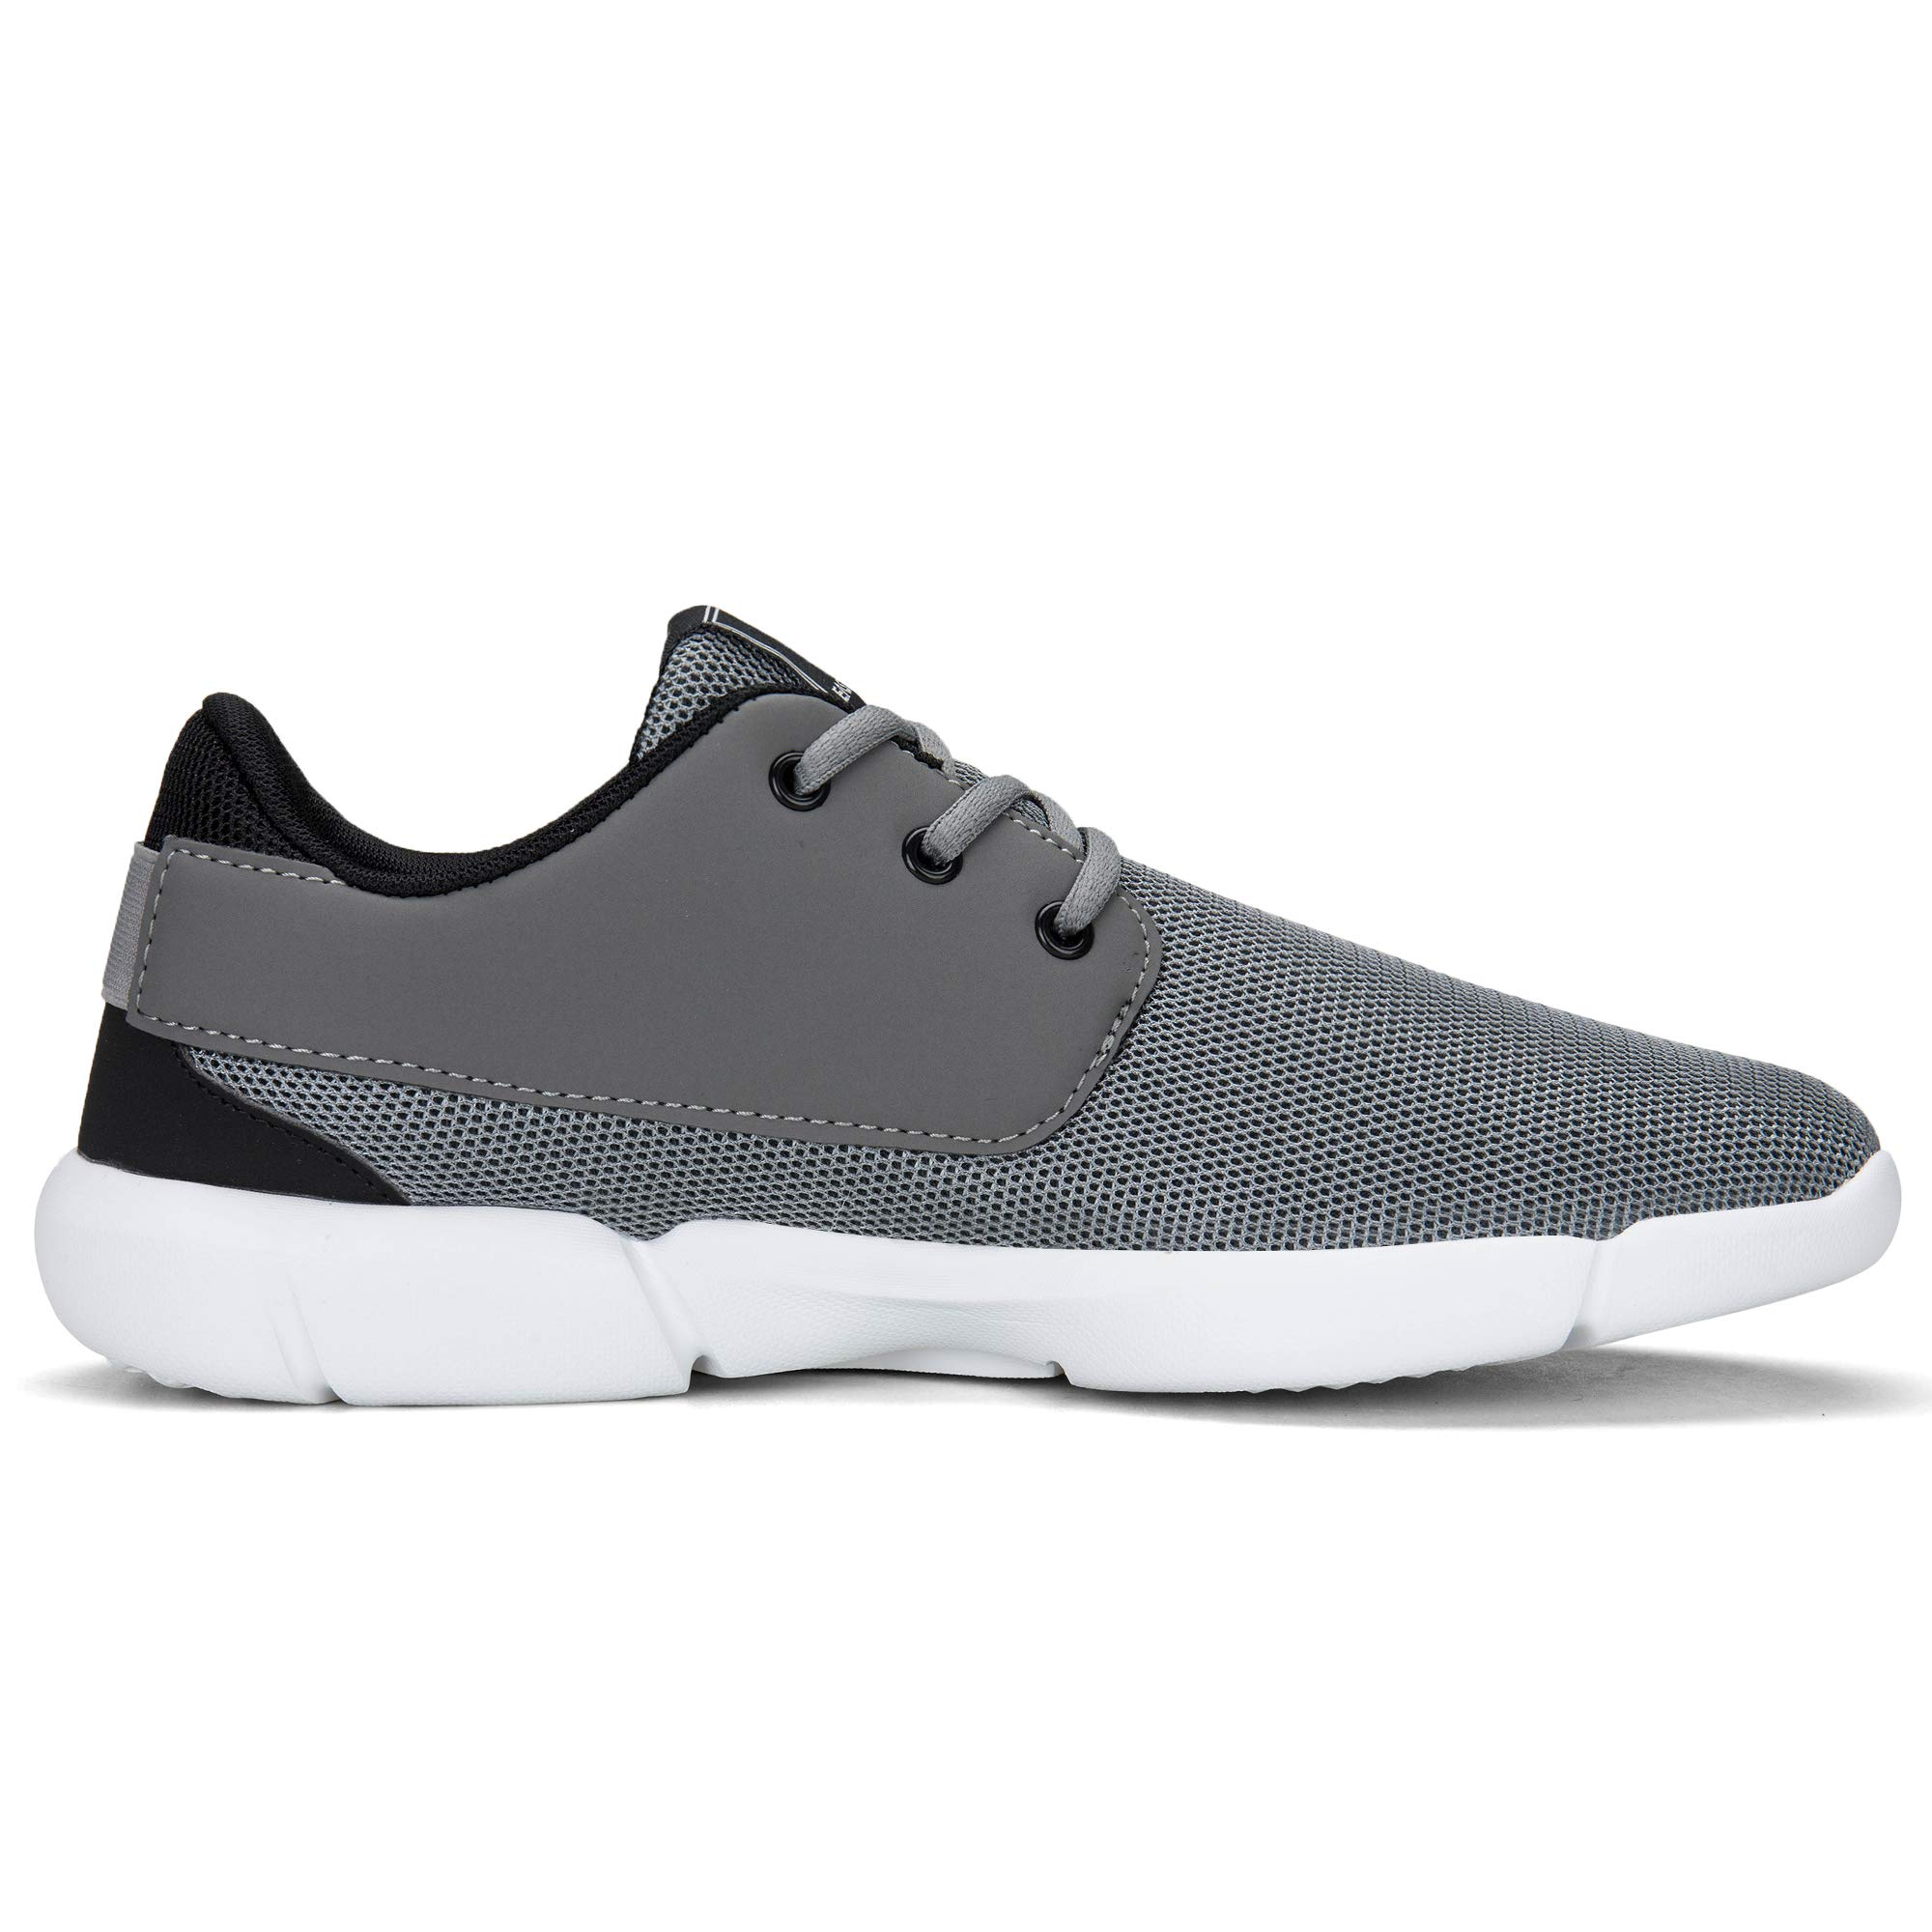 EAST LANDER Walking Shoes for Men Casual Sneakers Lightweight Athletic Shoes Lace-up Running Sports Shoes SPT001-M6-43